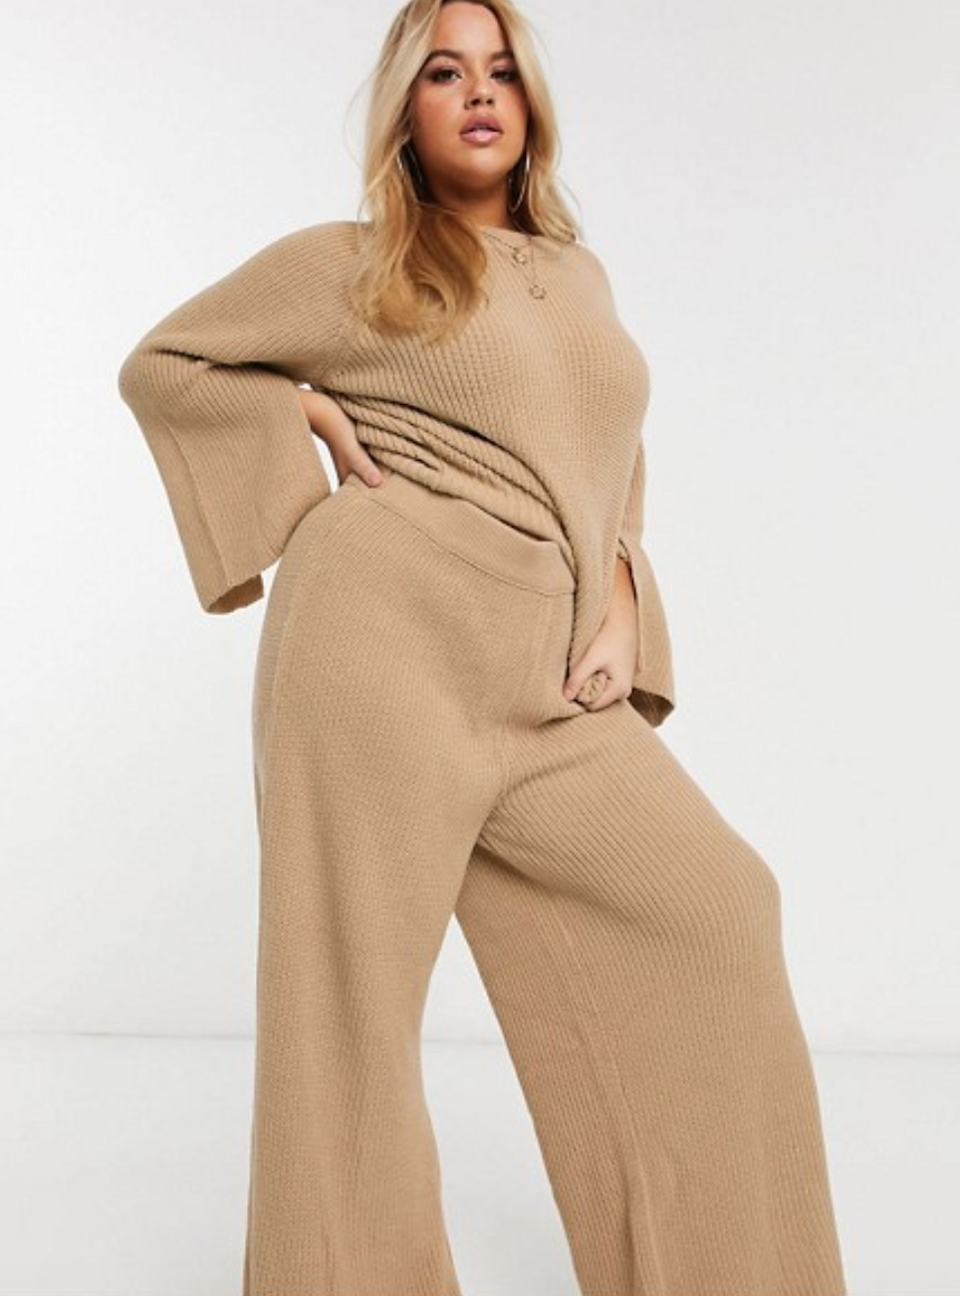 "<br> <br> <strong>ASOS CURVE</strong> Curve Premium Knitted Sweater Set, $, available at <a href=""https://go.skimresources.com/?id=30283X879131&url=https%3A%2F%2Fwww.asos.com%2Fus%2Fasos-curve%2Fasos-design-curve-lounge-premium-knitted-sweater-and-pants-set%2Fgrp%2F27999"" rel=""nofollow noopener"" target=""_blank"" data-ylk=""slk:ASOS"" class=""link rapid-noclick-resp"">ASOS</a>"